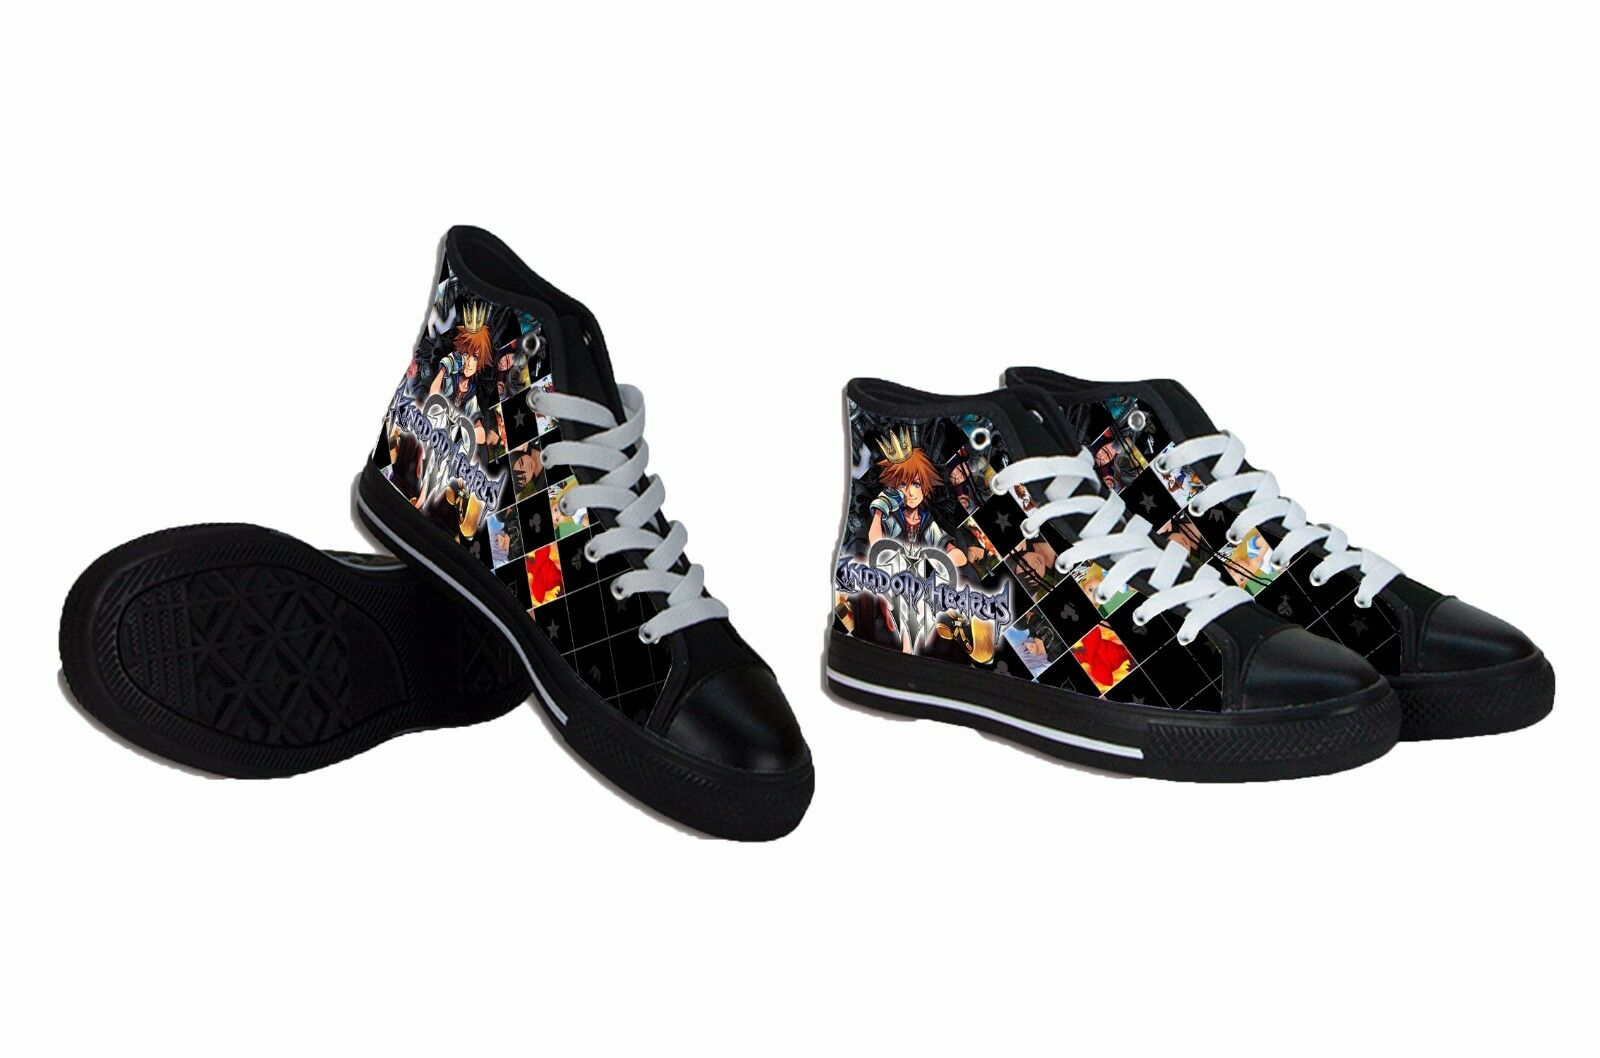 Man/Woman Kingdom Hearts Collection Casual Mens Shoes economic product quality Suitable for color